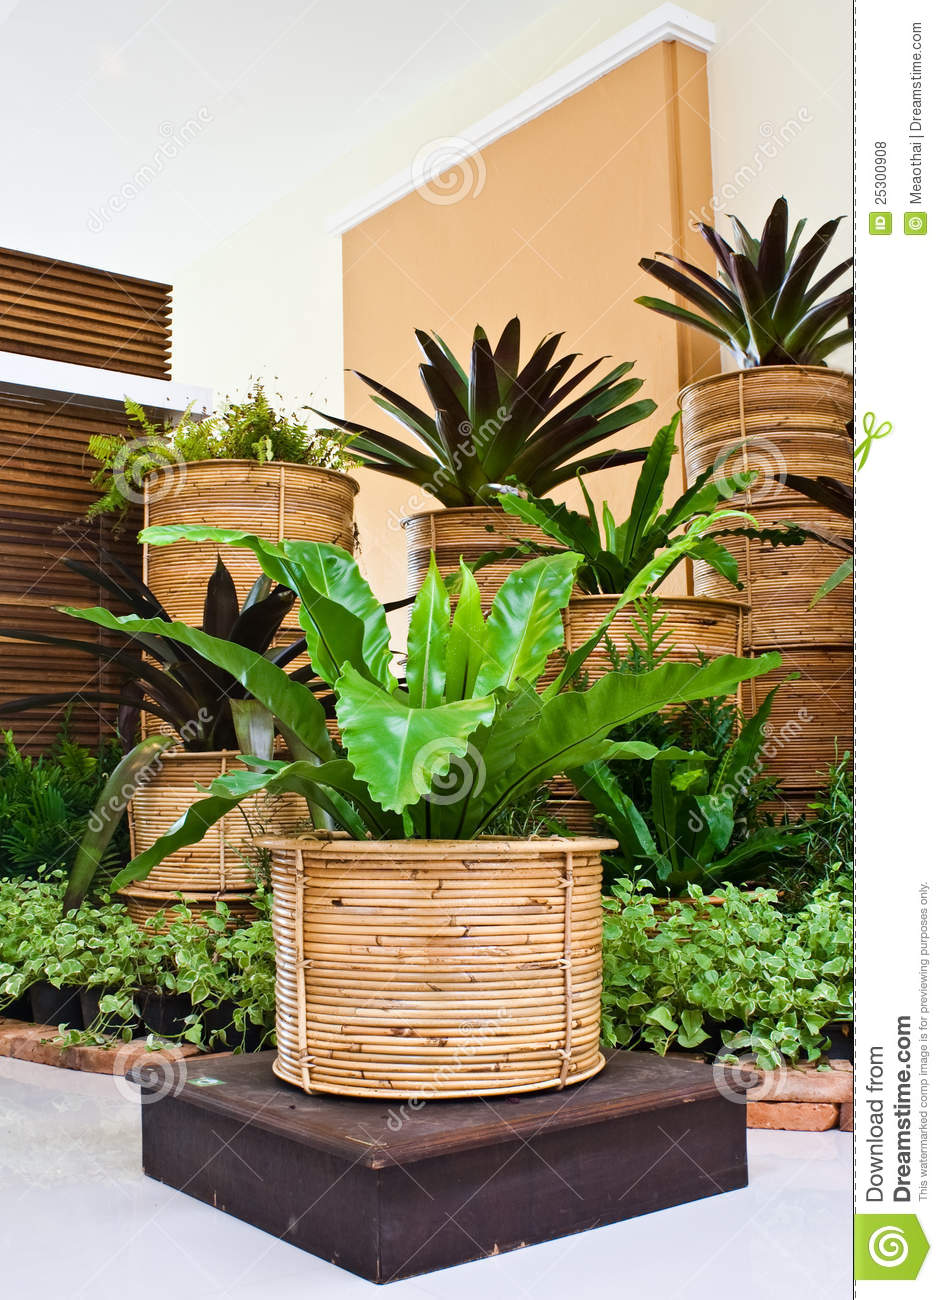 decoration de jardin d'interieur